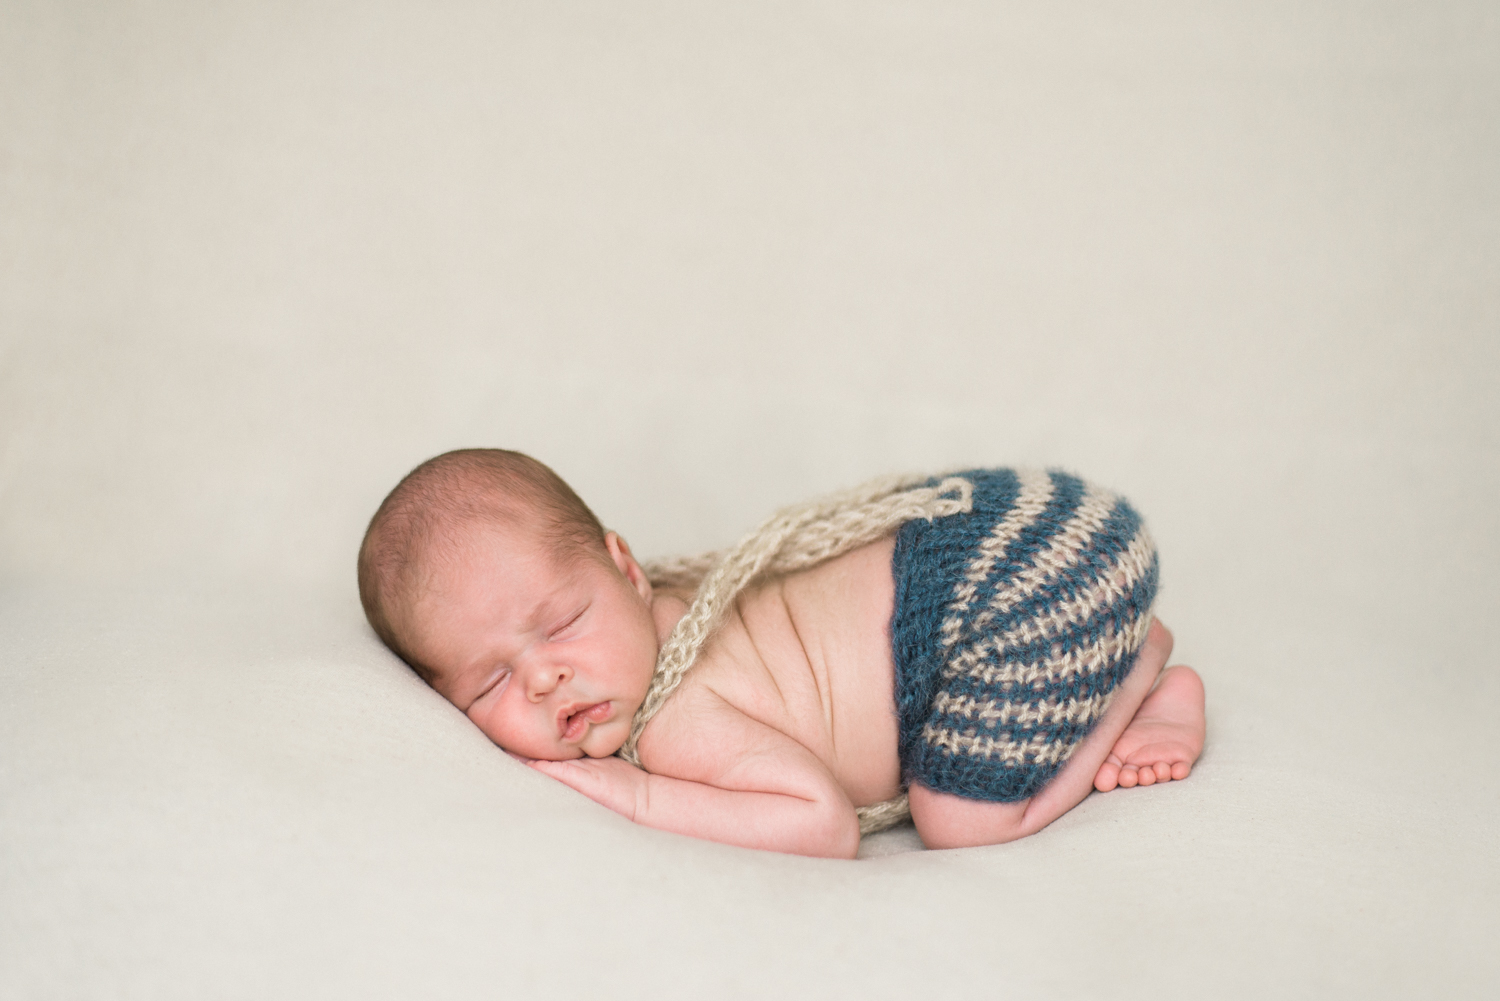 portland-newborn-baby-photography-peter-rabbit-knit-overalls-1.jpg